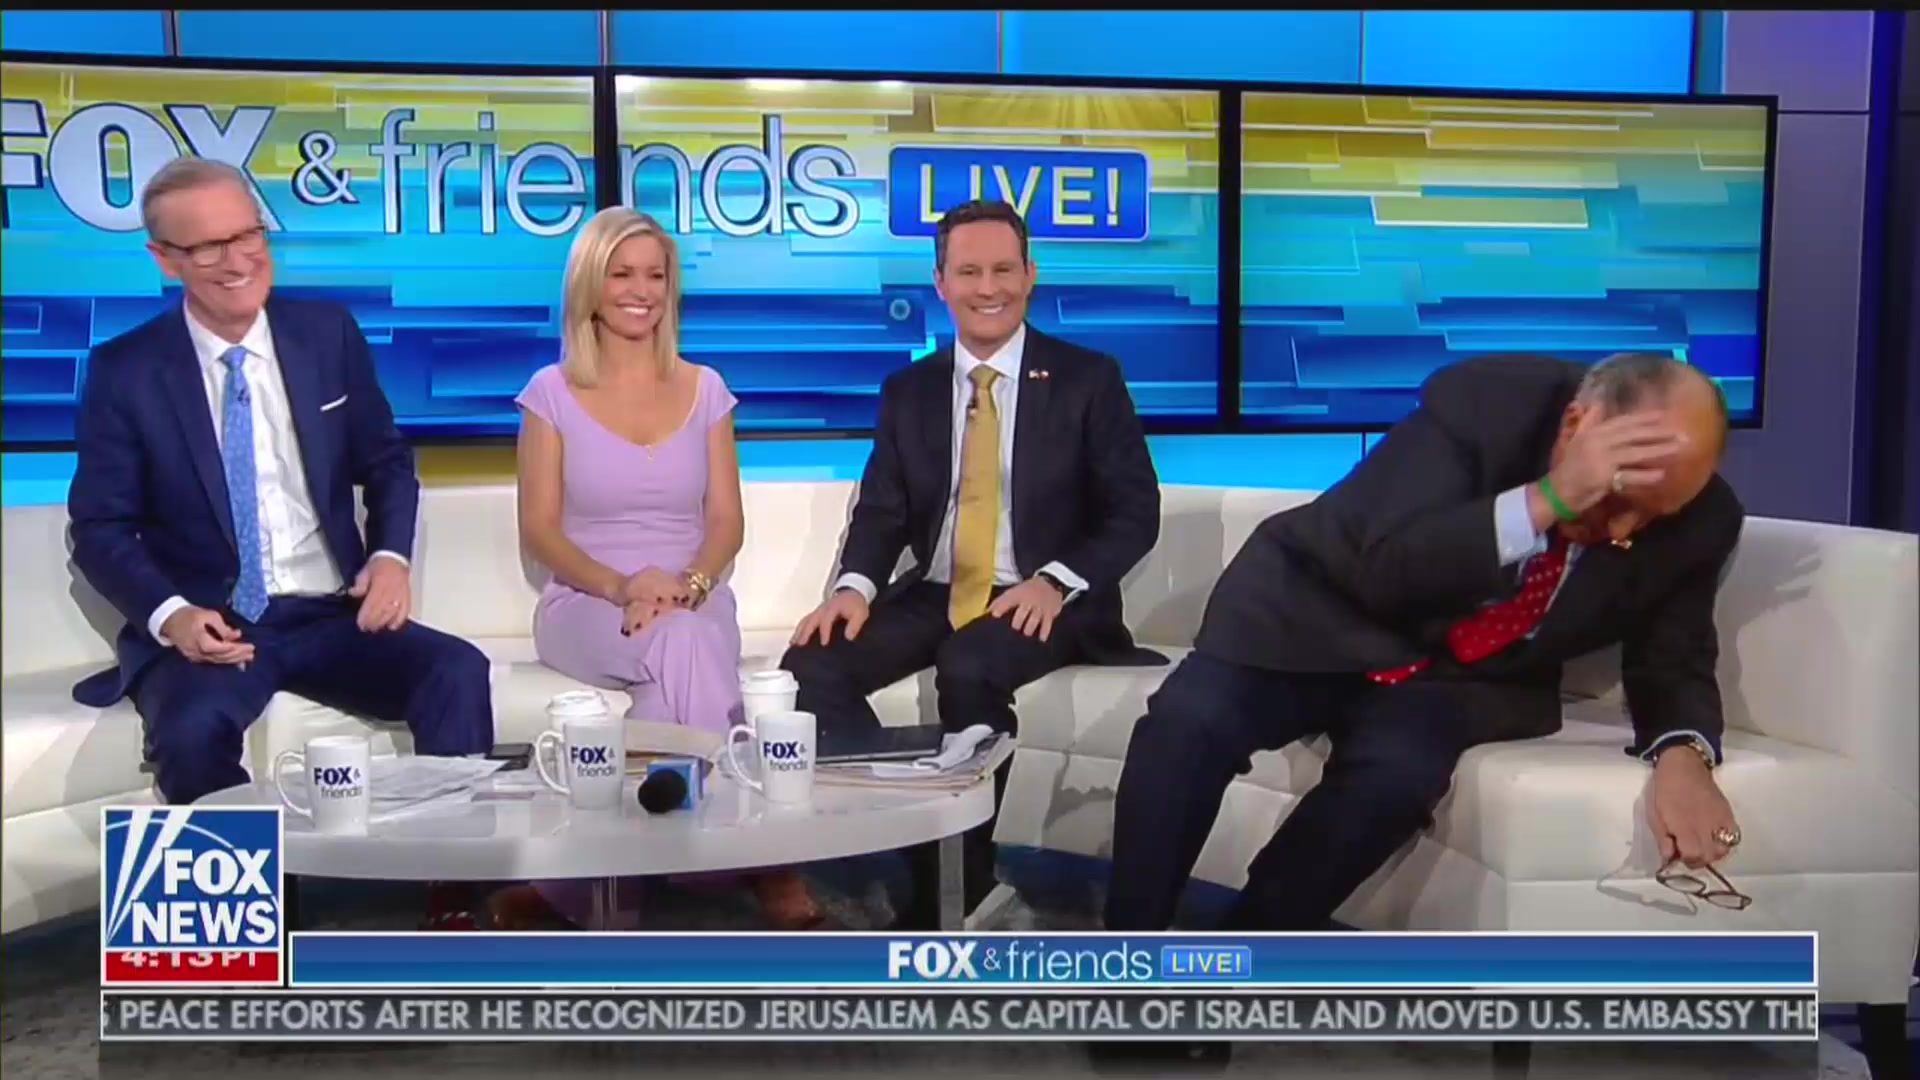 'Fox & Friends' Repeatedly Tries and Fails to End Interview With Rudy Giuliani